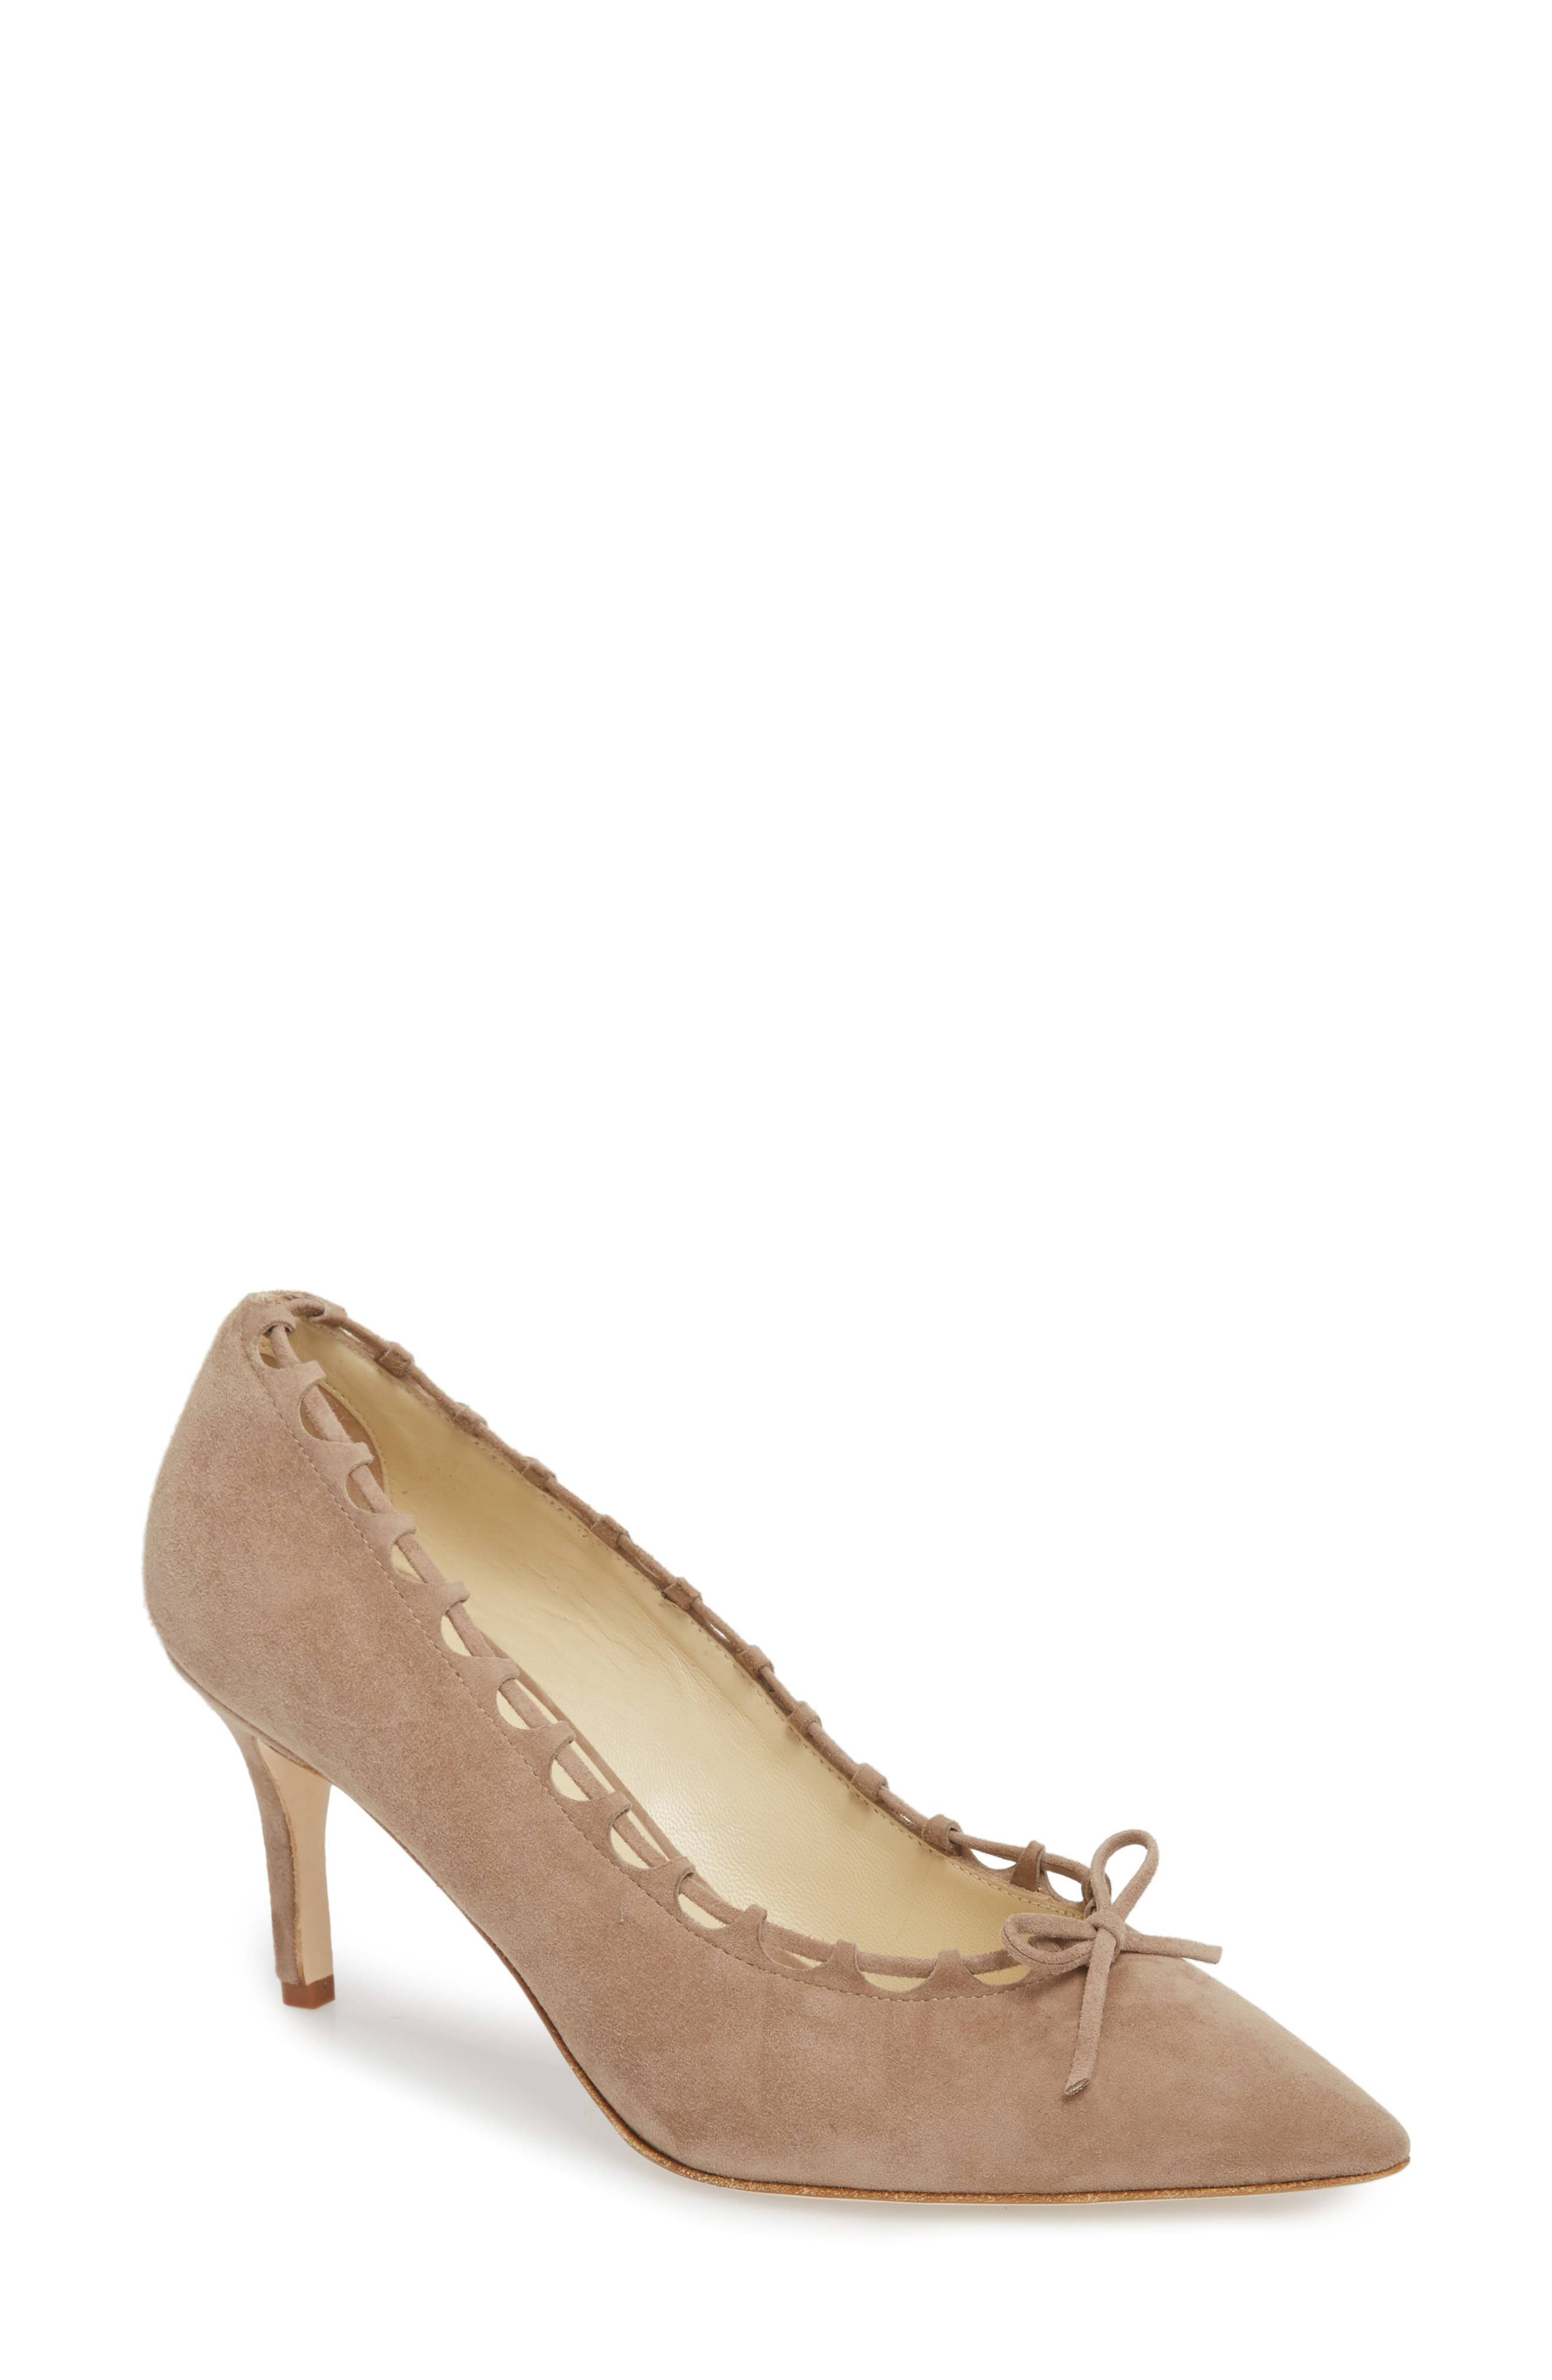 Butter Eris Pointy Toe Pump,                             Main thumbnail 1, color,                             Taupe Suede